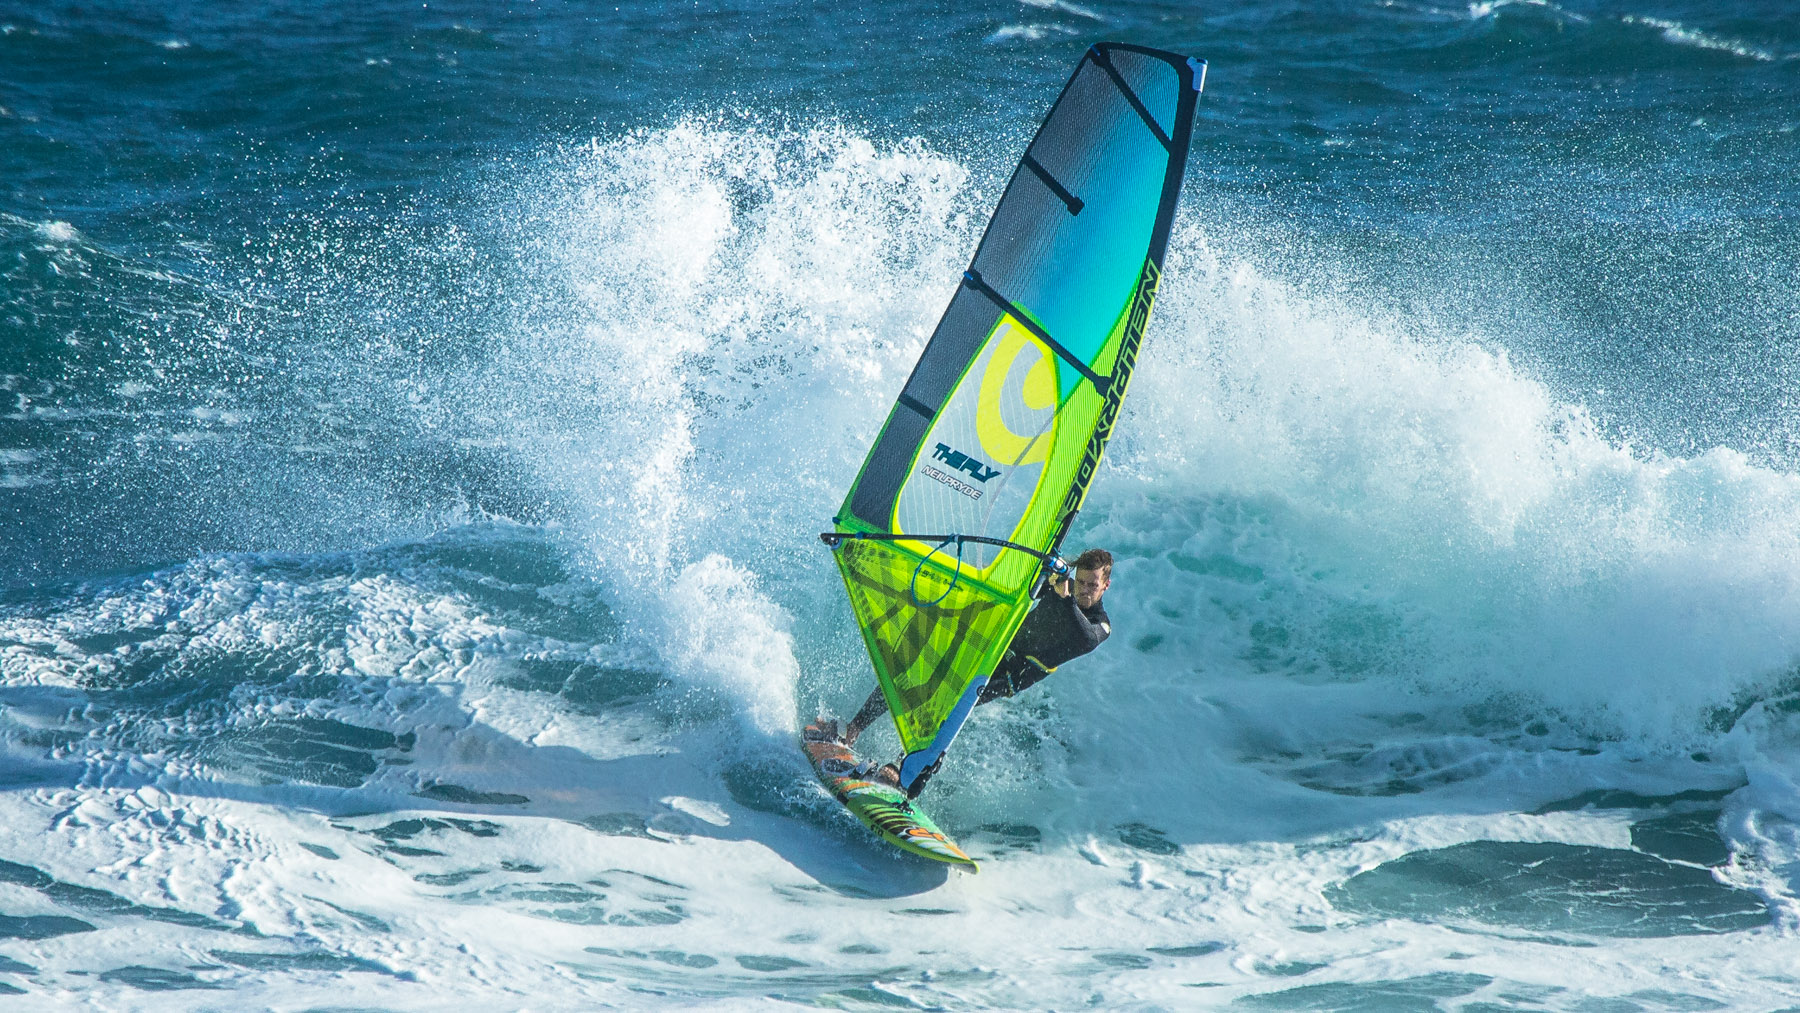 alastair mcleod windsurfing woolamai phillip island with southern wright whales